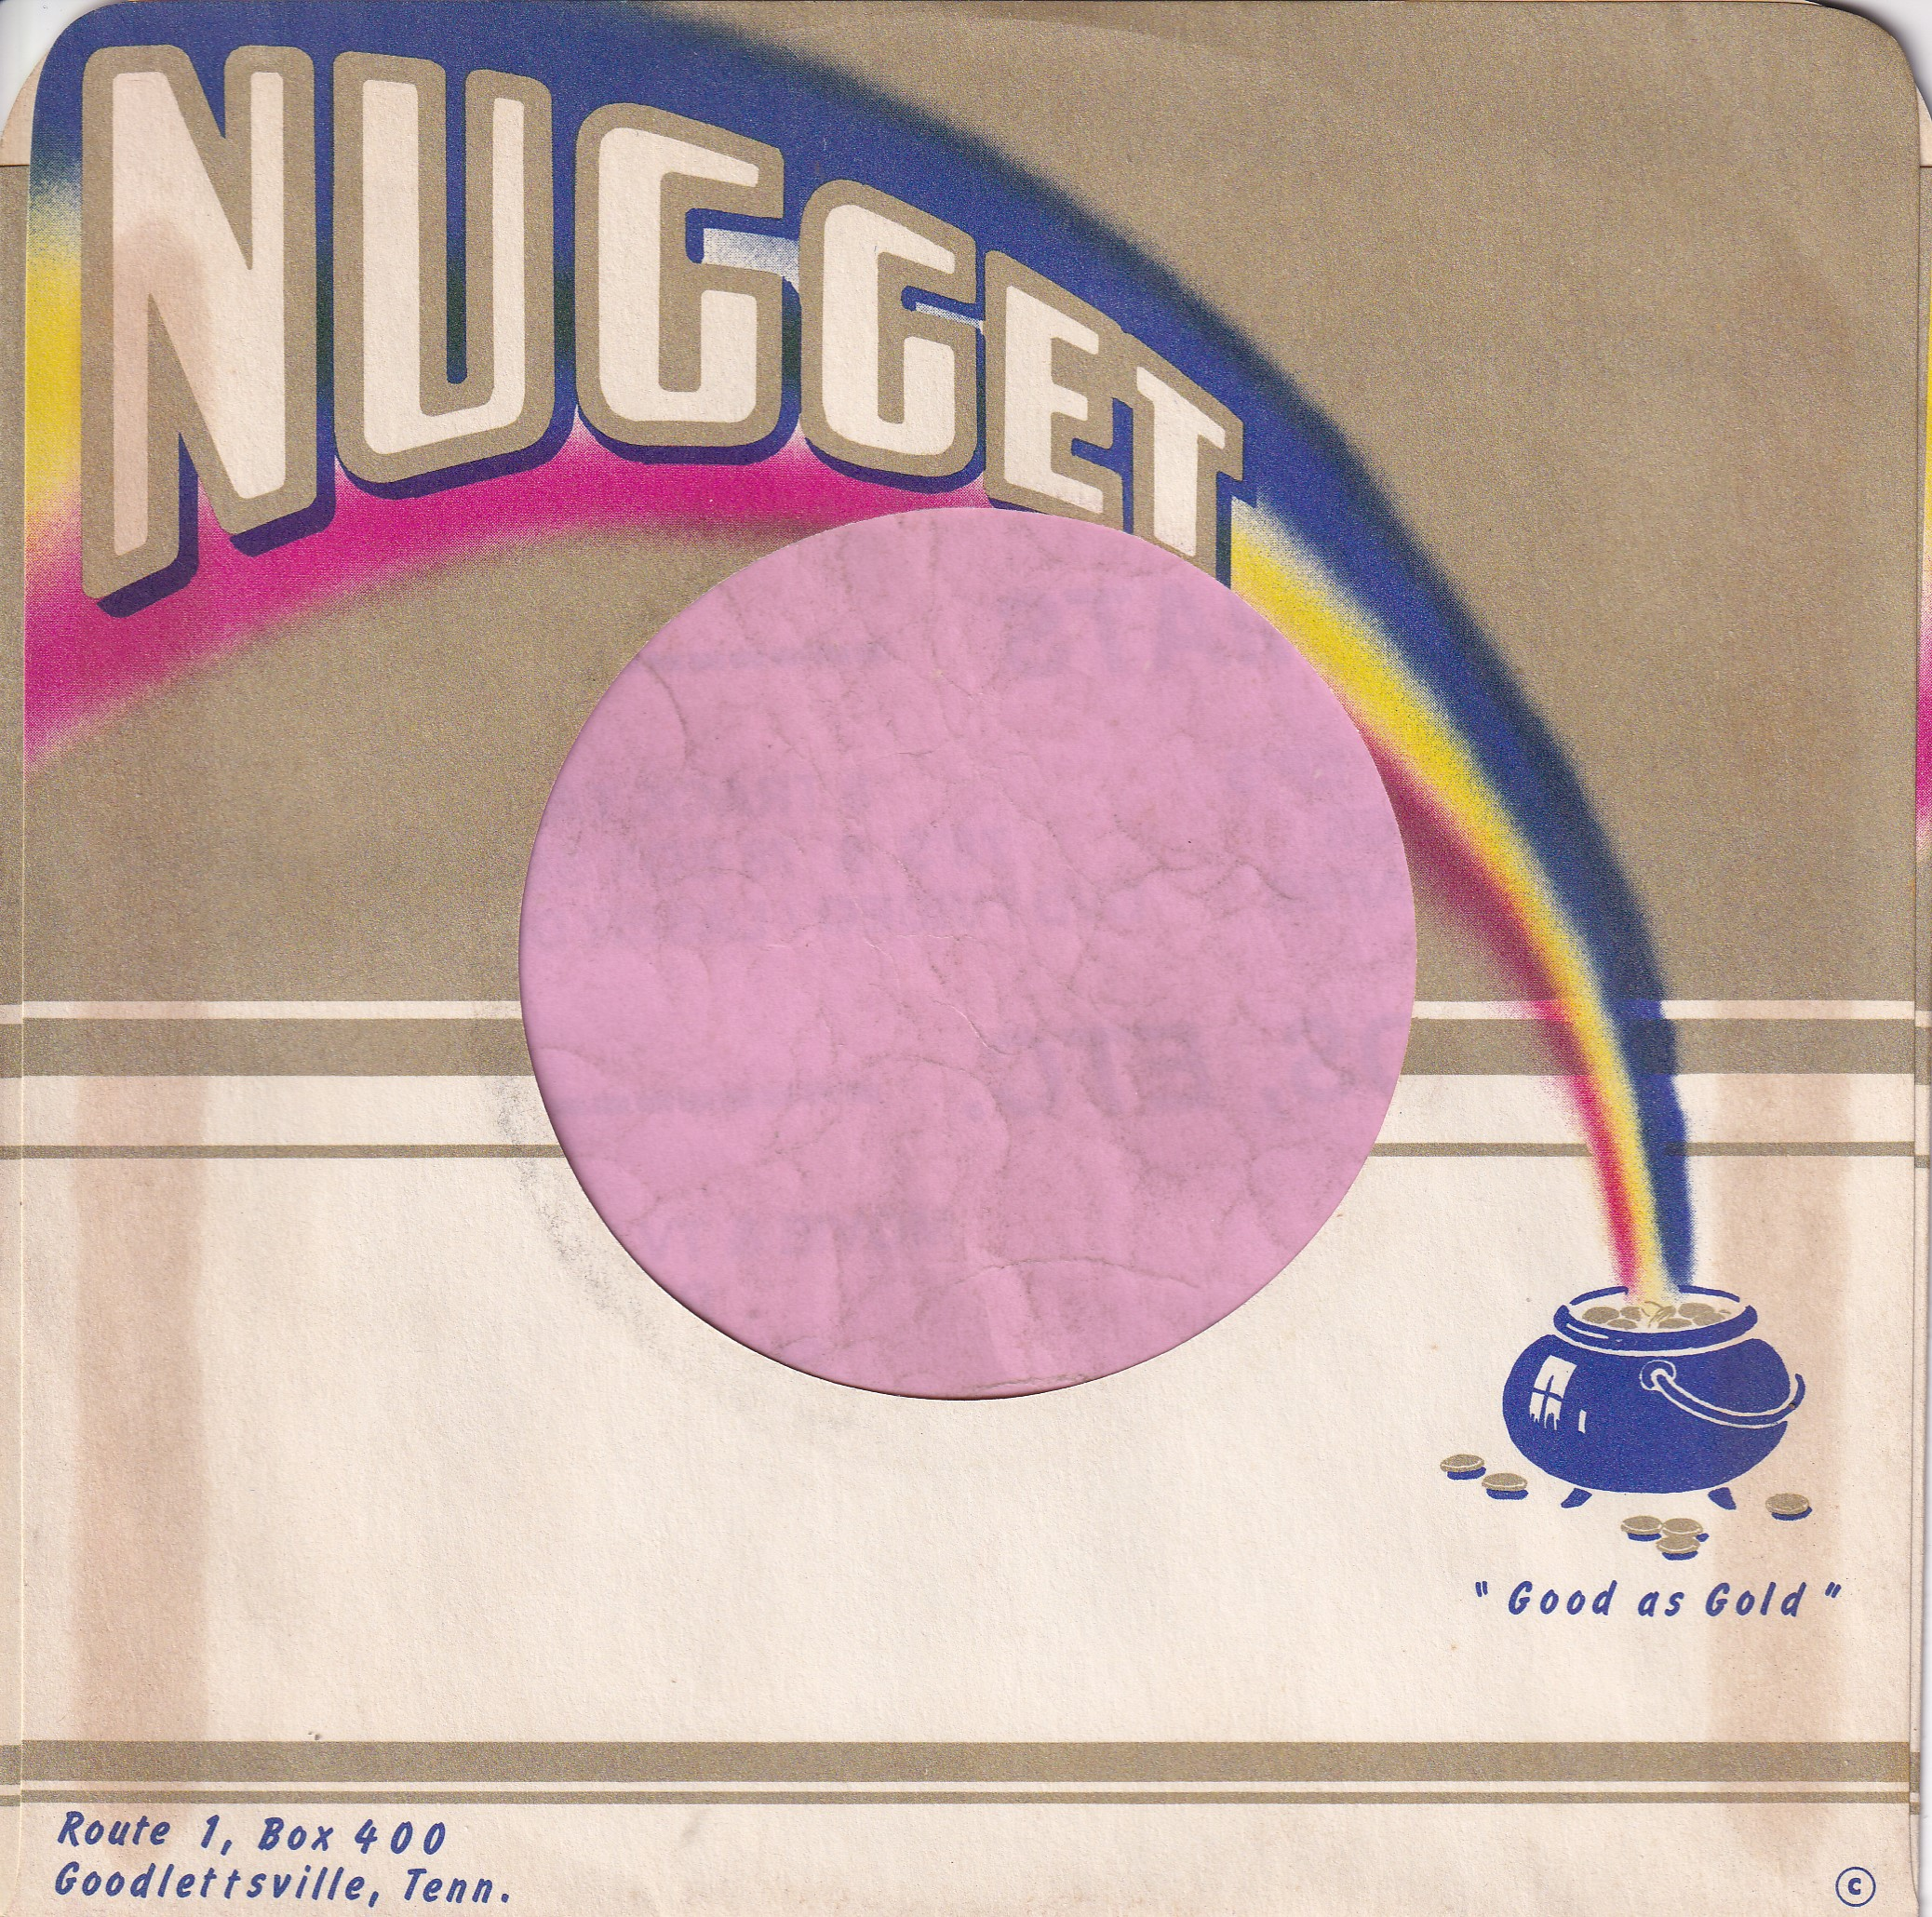 Nugget Records U.S.A. Coloured Print Company Sleeve 1964 – 1970